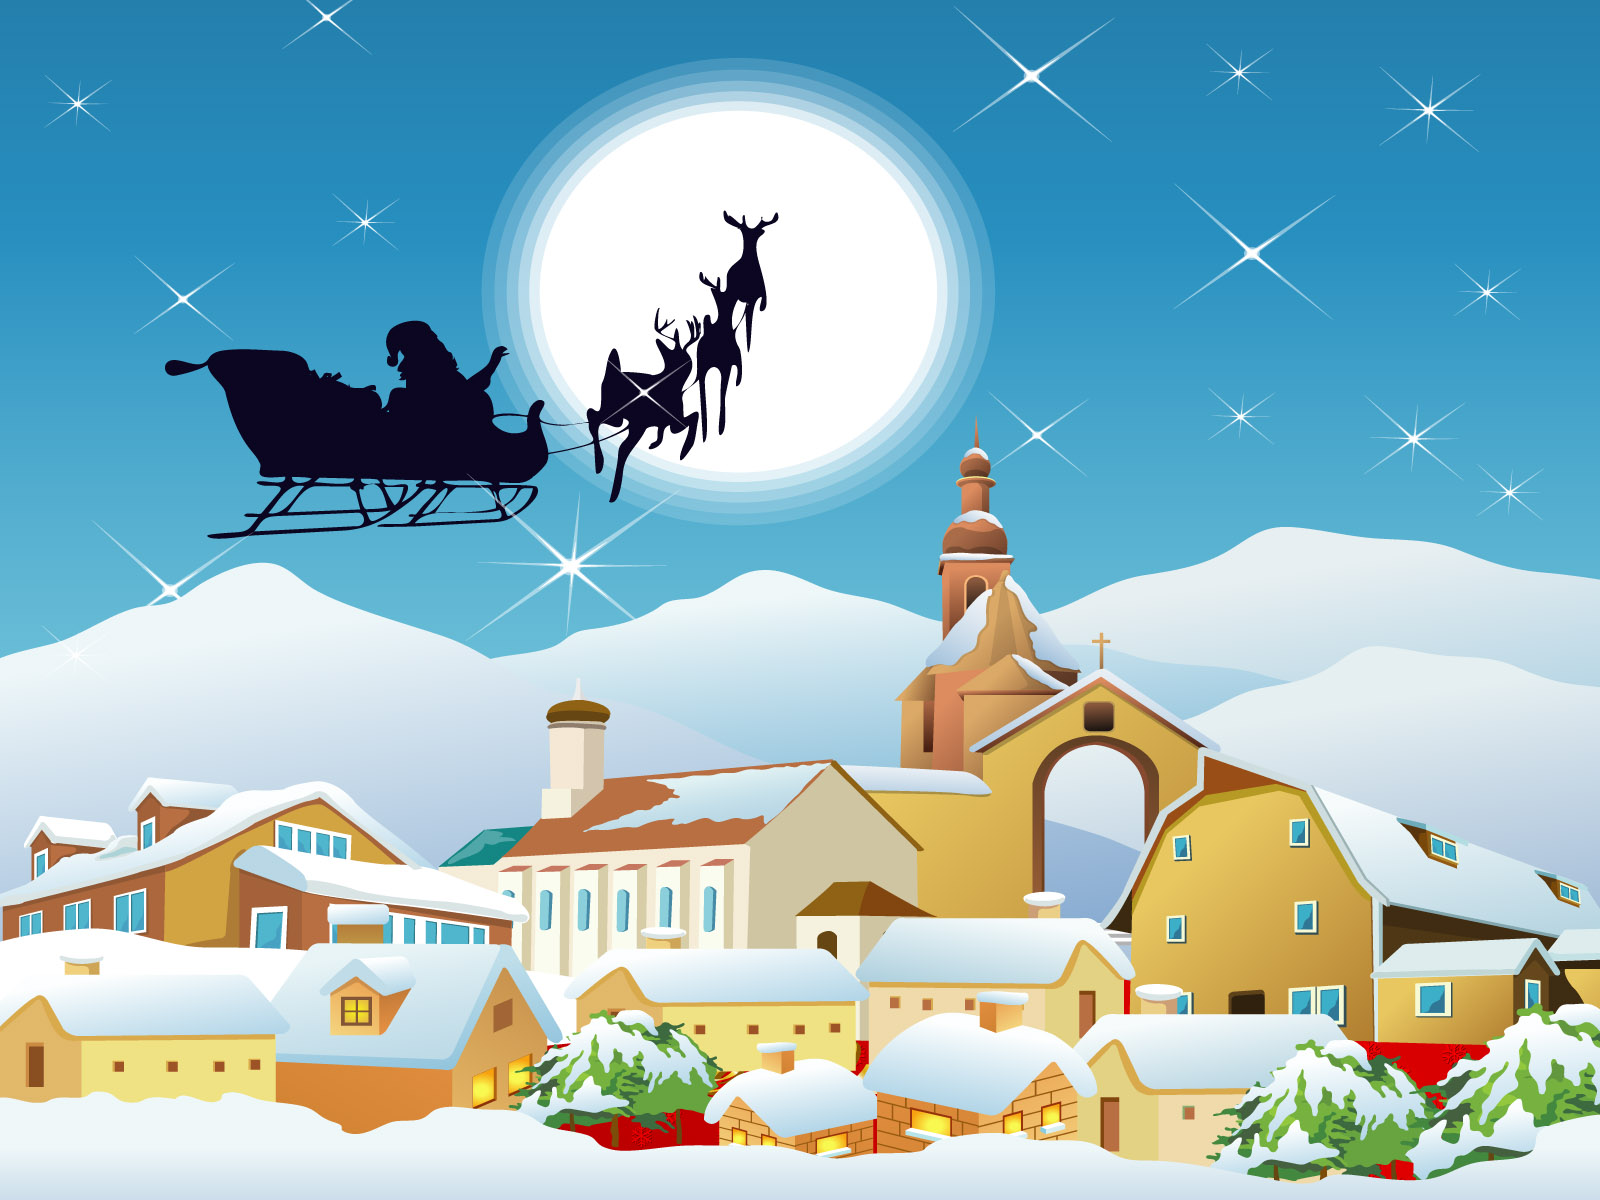 Santa claus pictures cards for kids free download pixhome - Anime christmas wallpaper ...